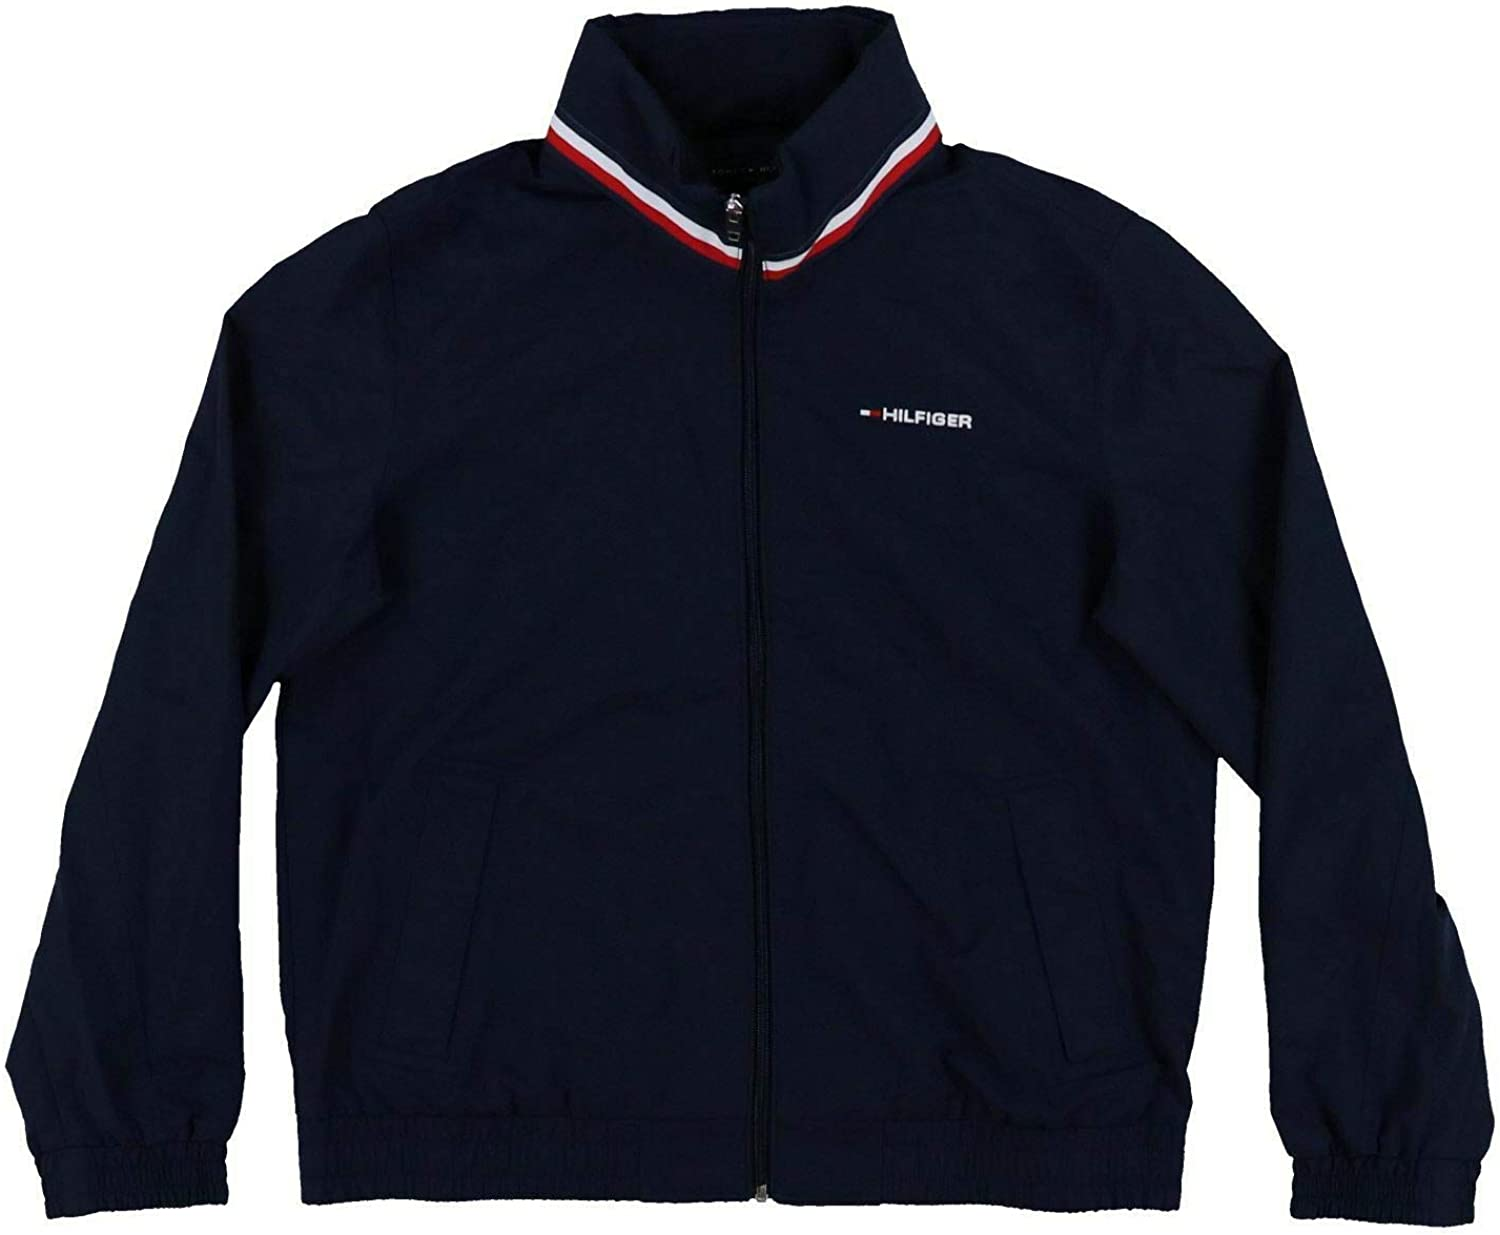 Tommy Hilfiger Max 61% OFF Women's Windbreaker Challenge the lowest price of Japan Jacket